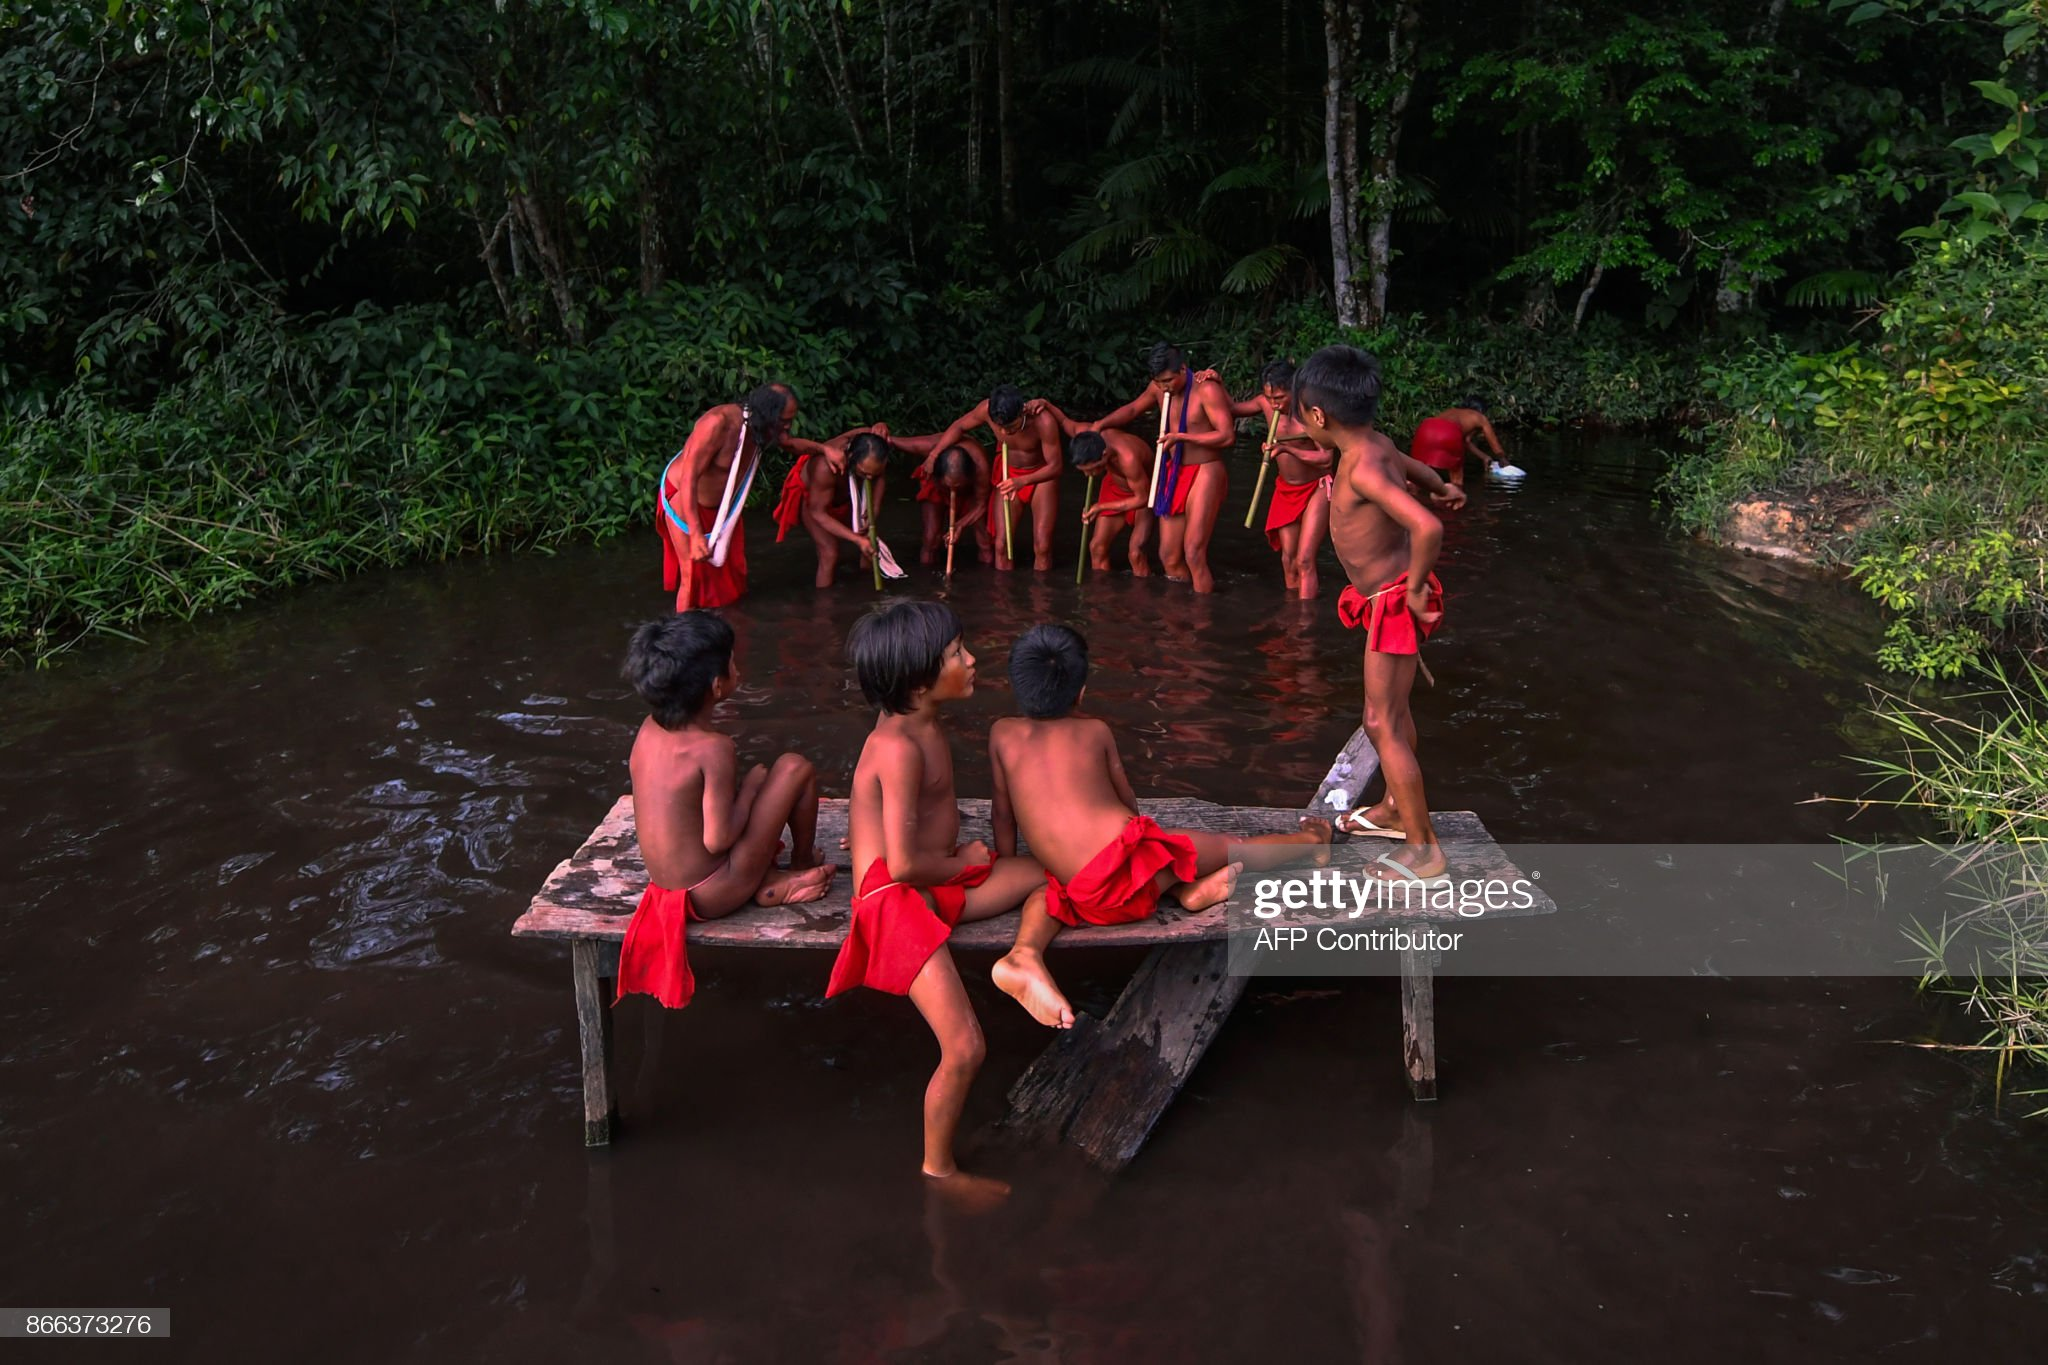 https://www.earthnews95.com/2019/11/Struggle-to-live-in-amazon.html